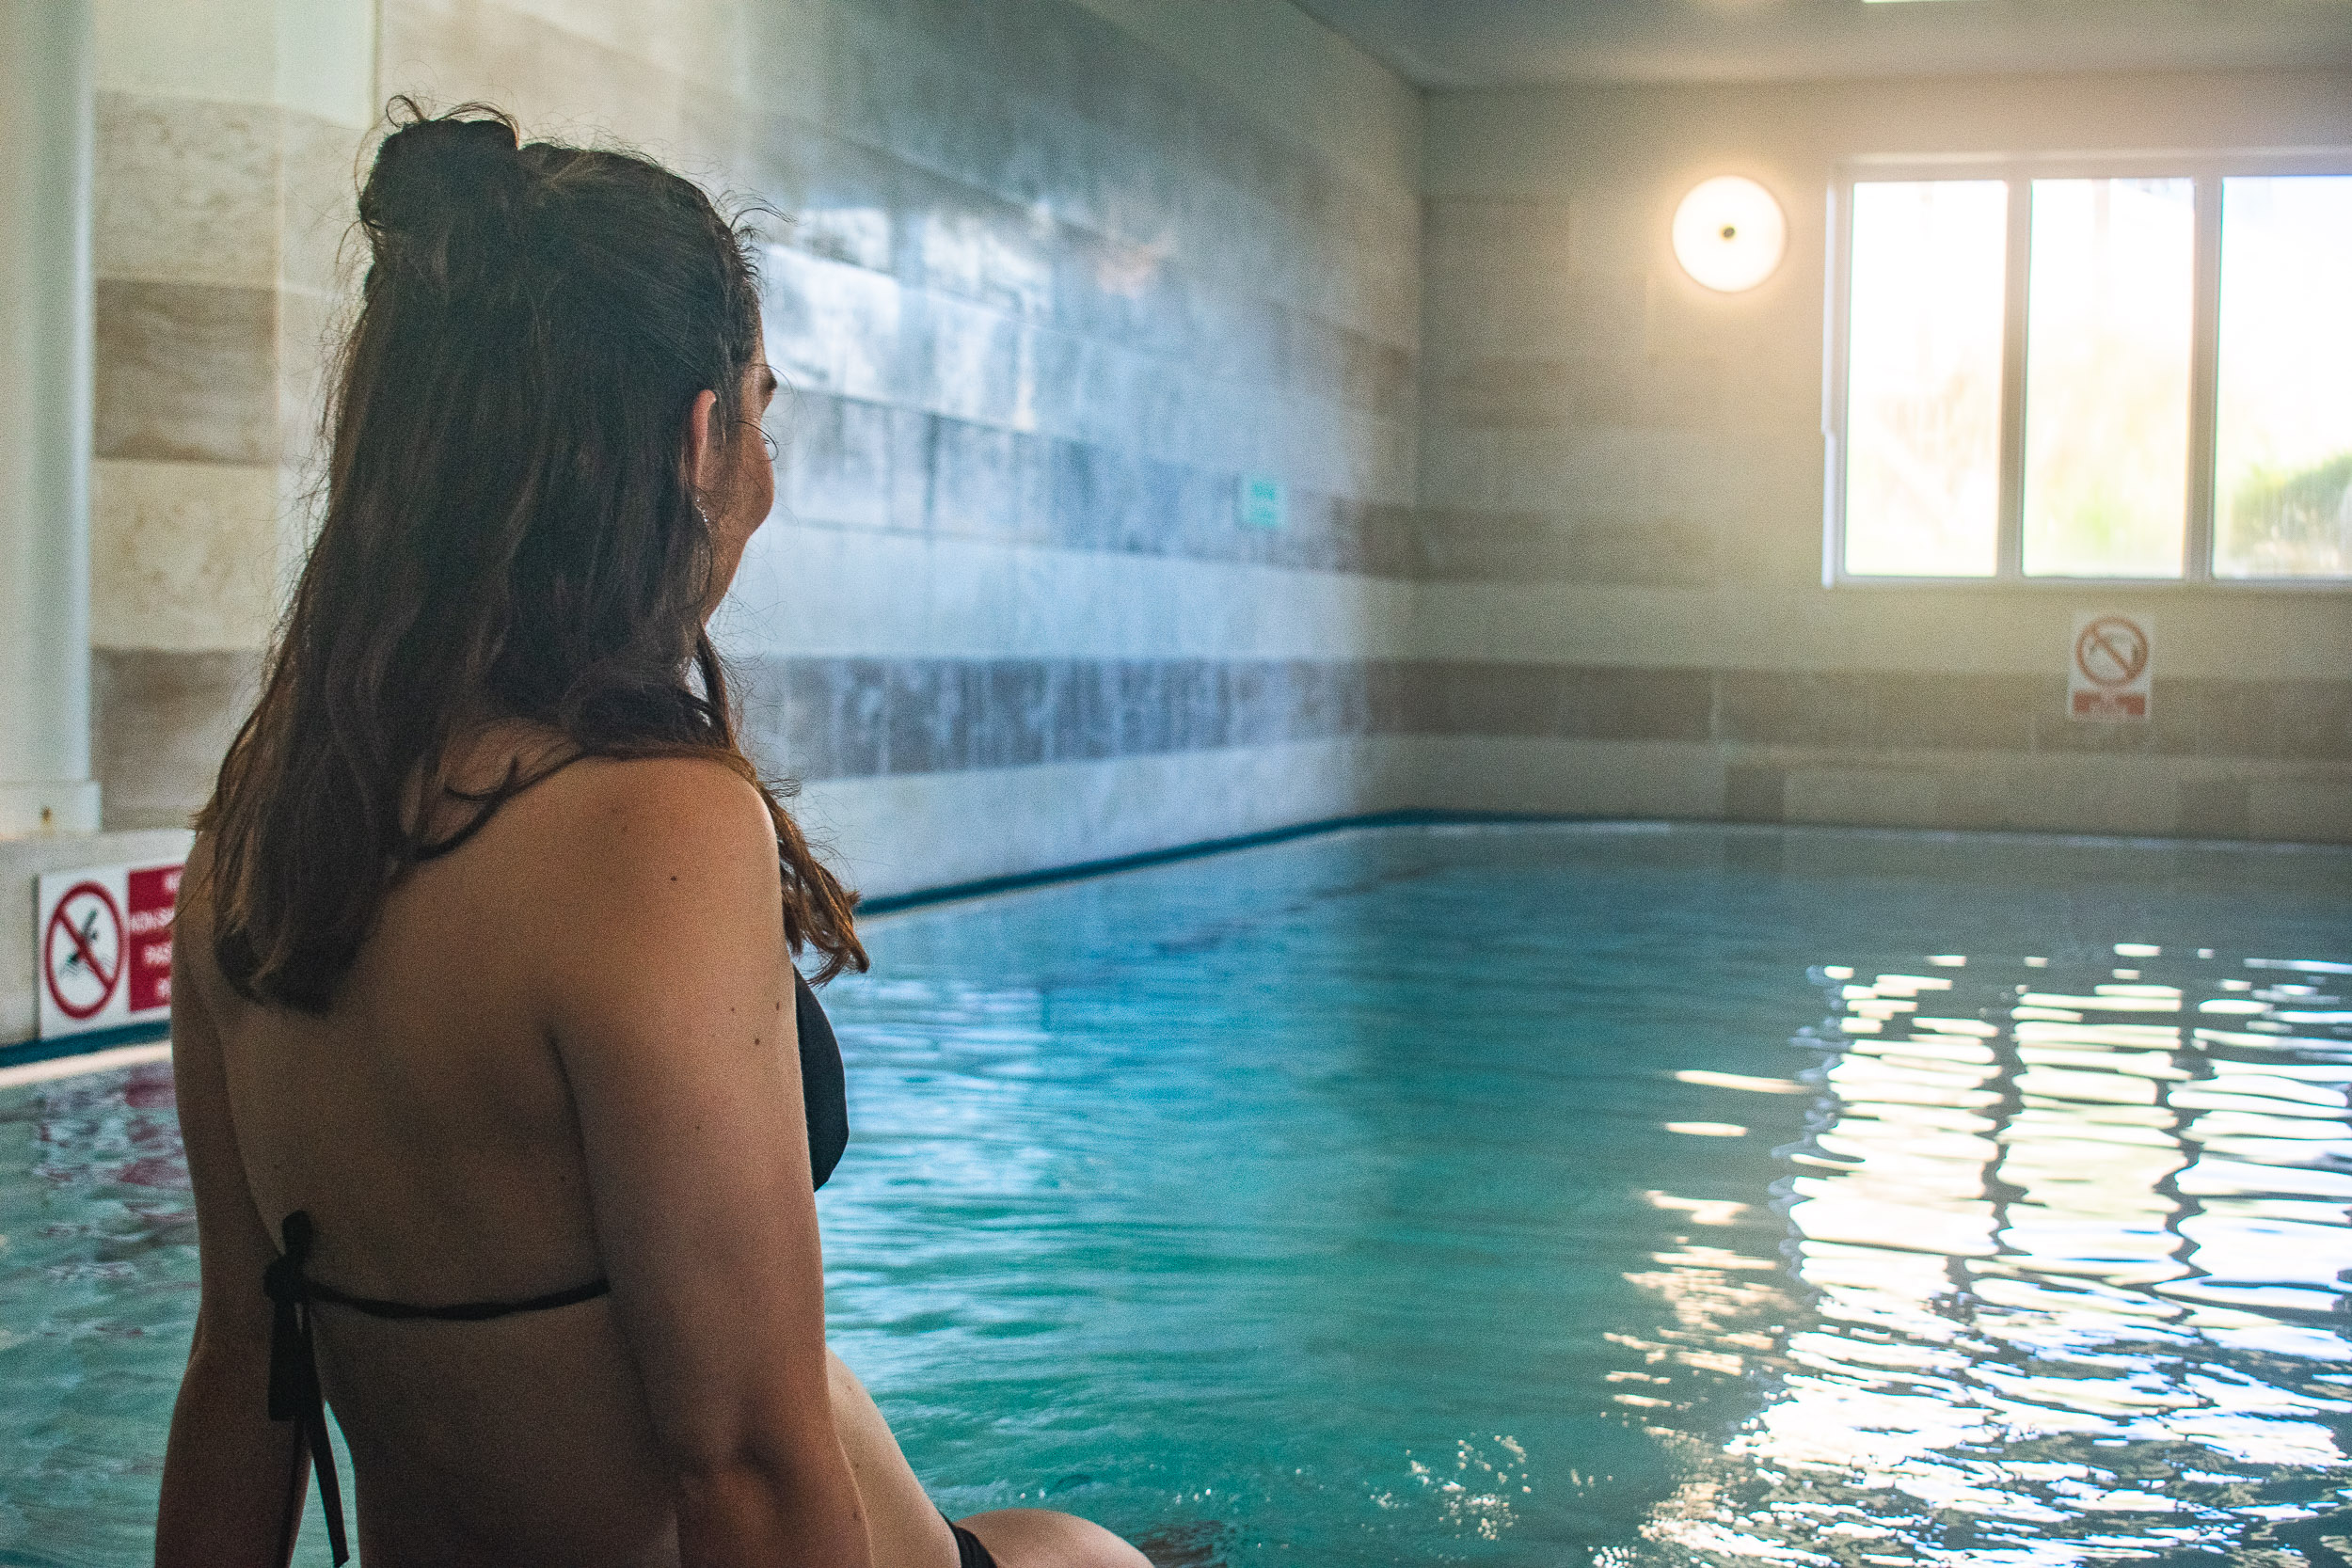 Indoor swimming pool at the Polurrian Health Club.